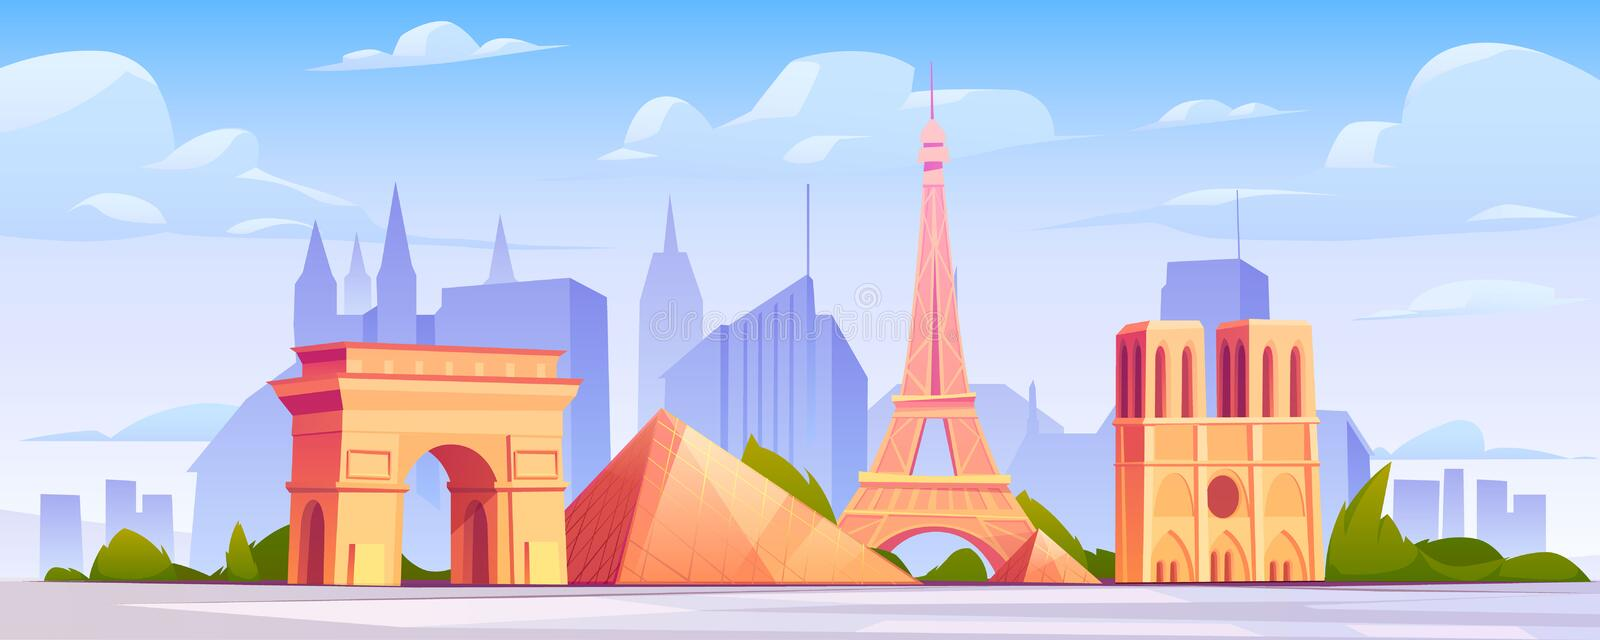 Cartoon Landscape Paris Stock Illustrations 355 Cartoon Landscape Paris Stock Illustrations Vectors Clipart Dreamstime